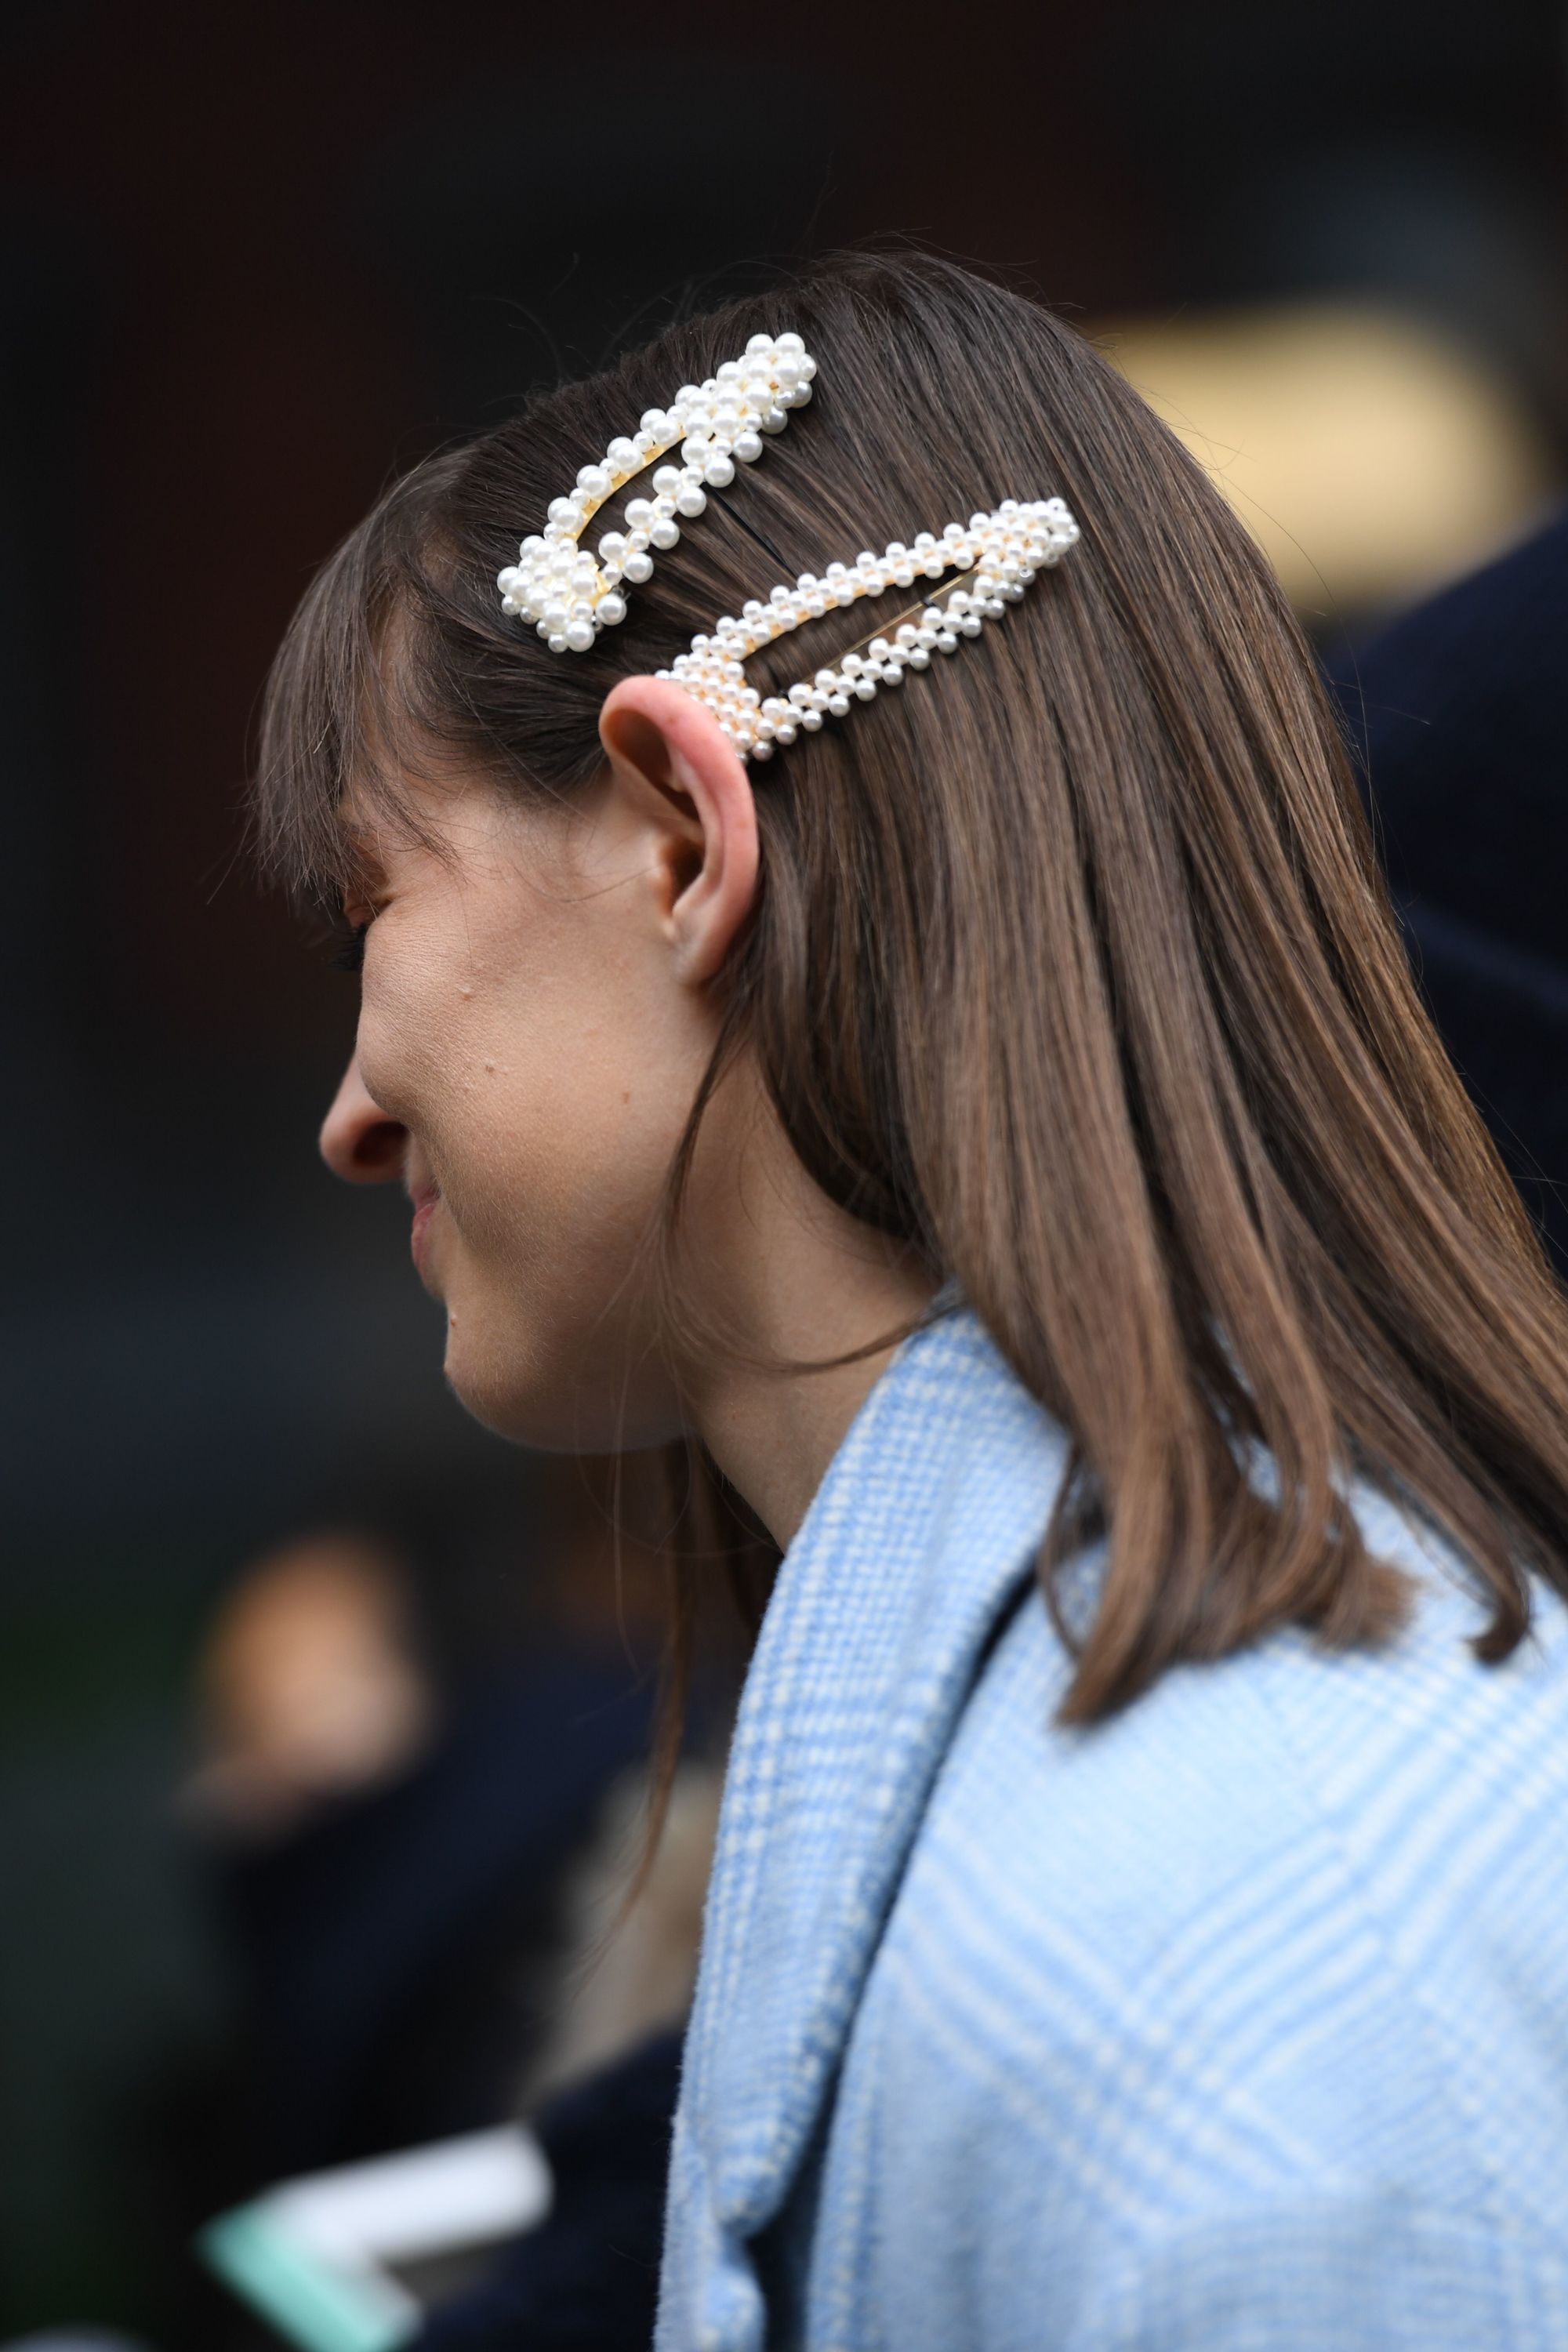 Hair trends 2019: Street style woman with shoulder length straight brown hair with bangs styled with pearl hair clips wearing a baby blue jacket.